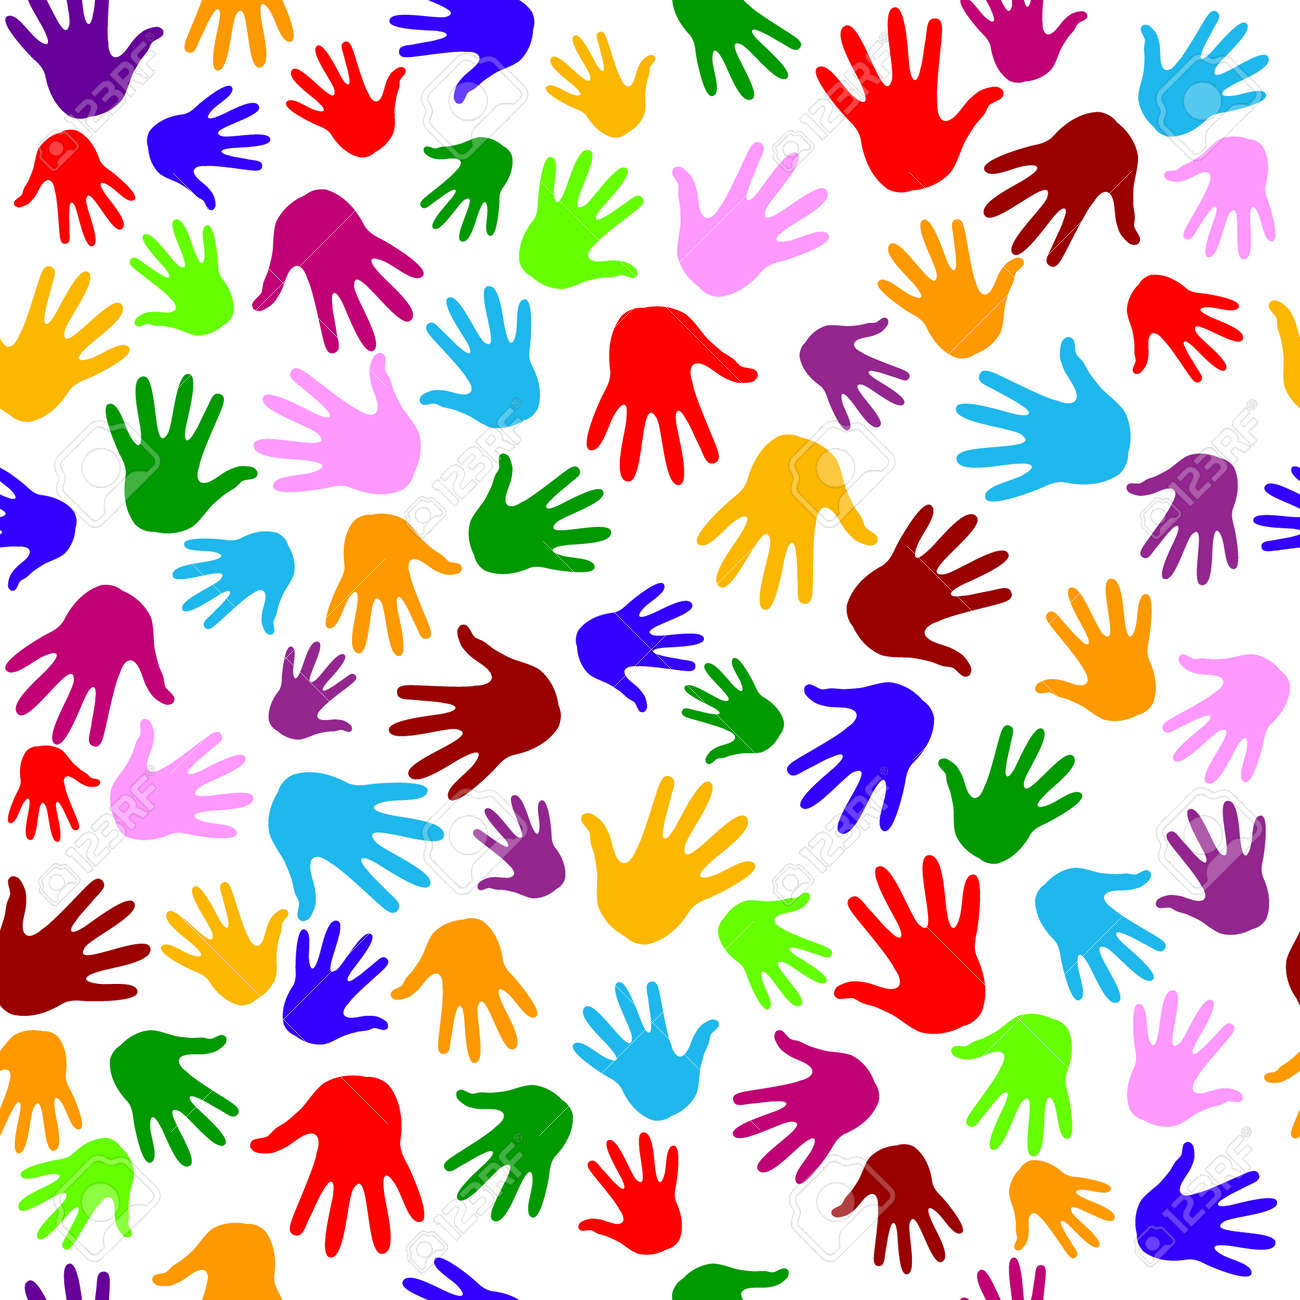 Hands pattern . Seamless pattern. Vector illustration isolated on a white background. - 160898508